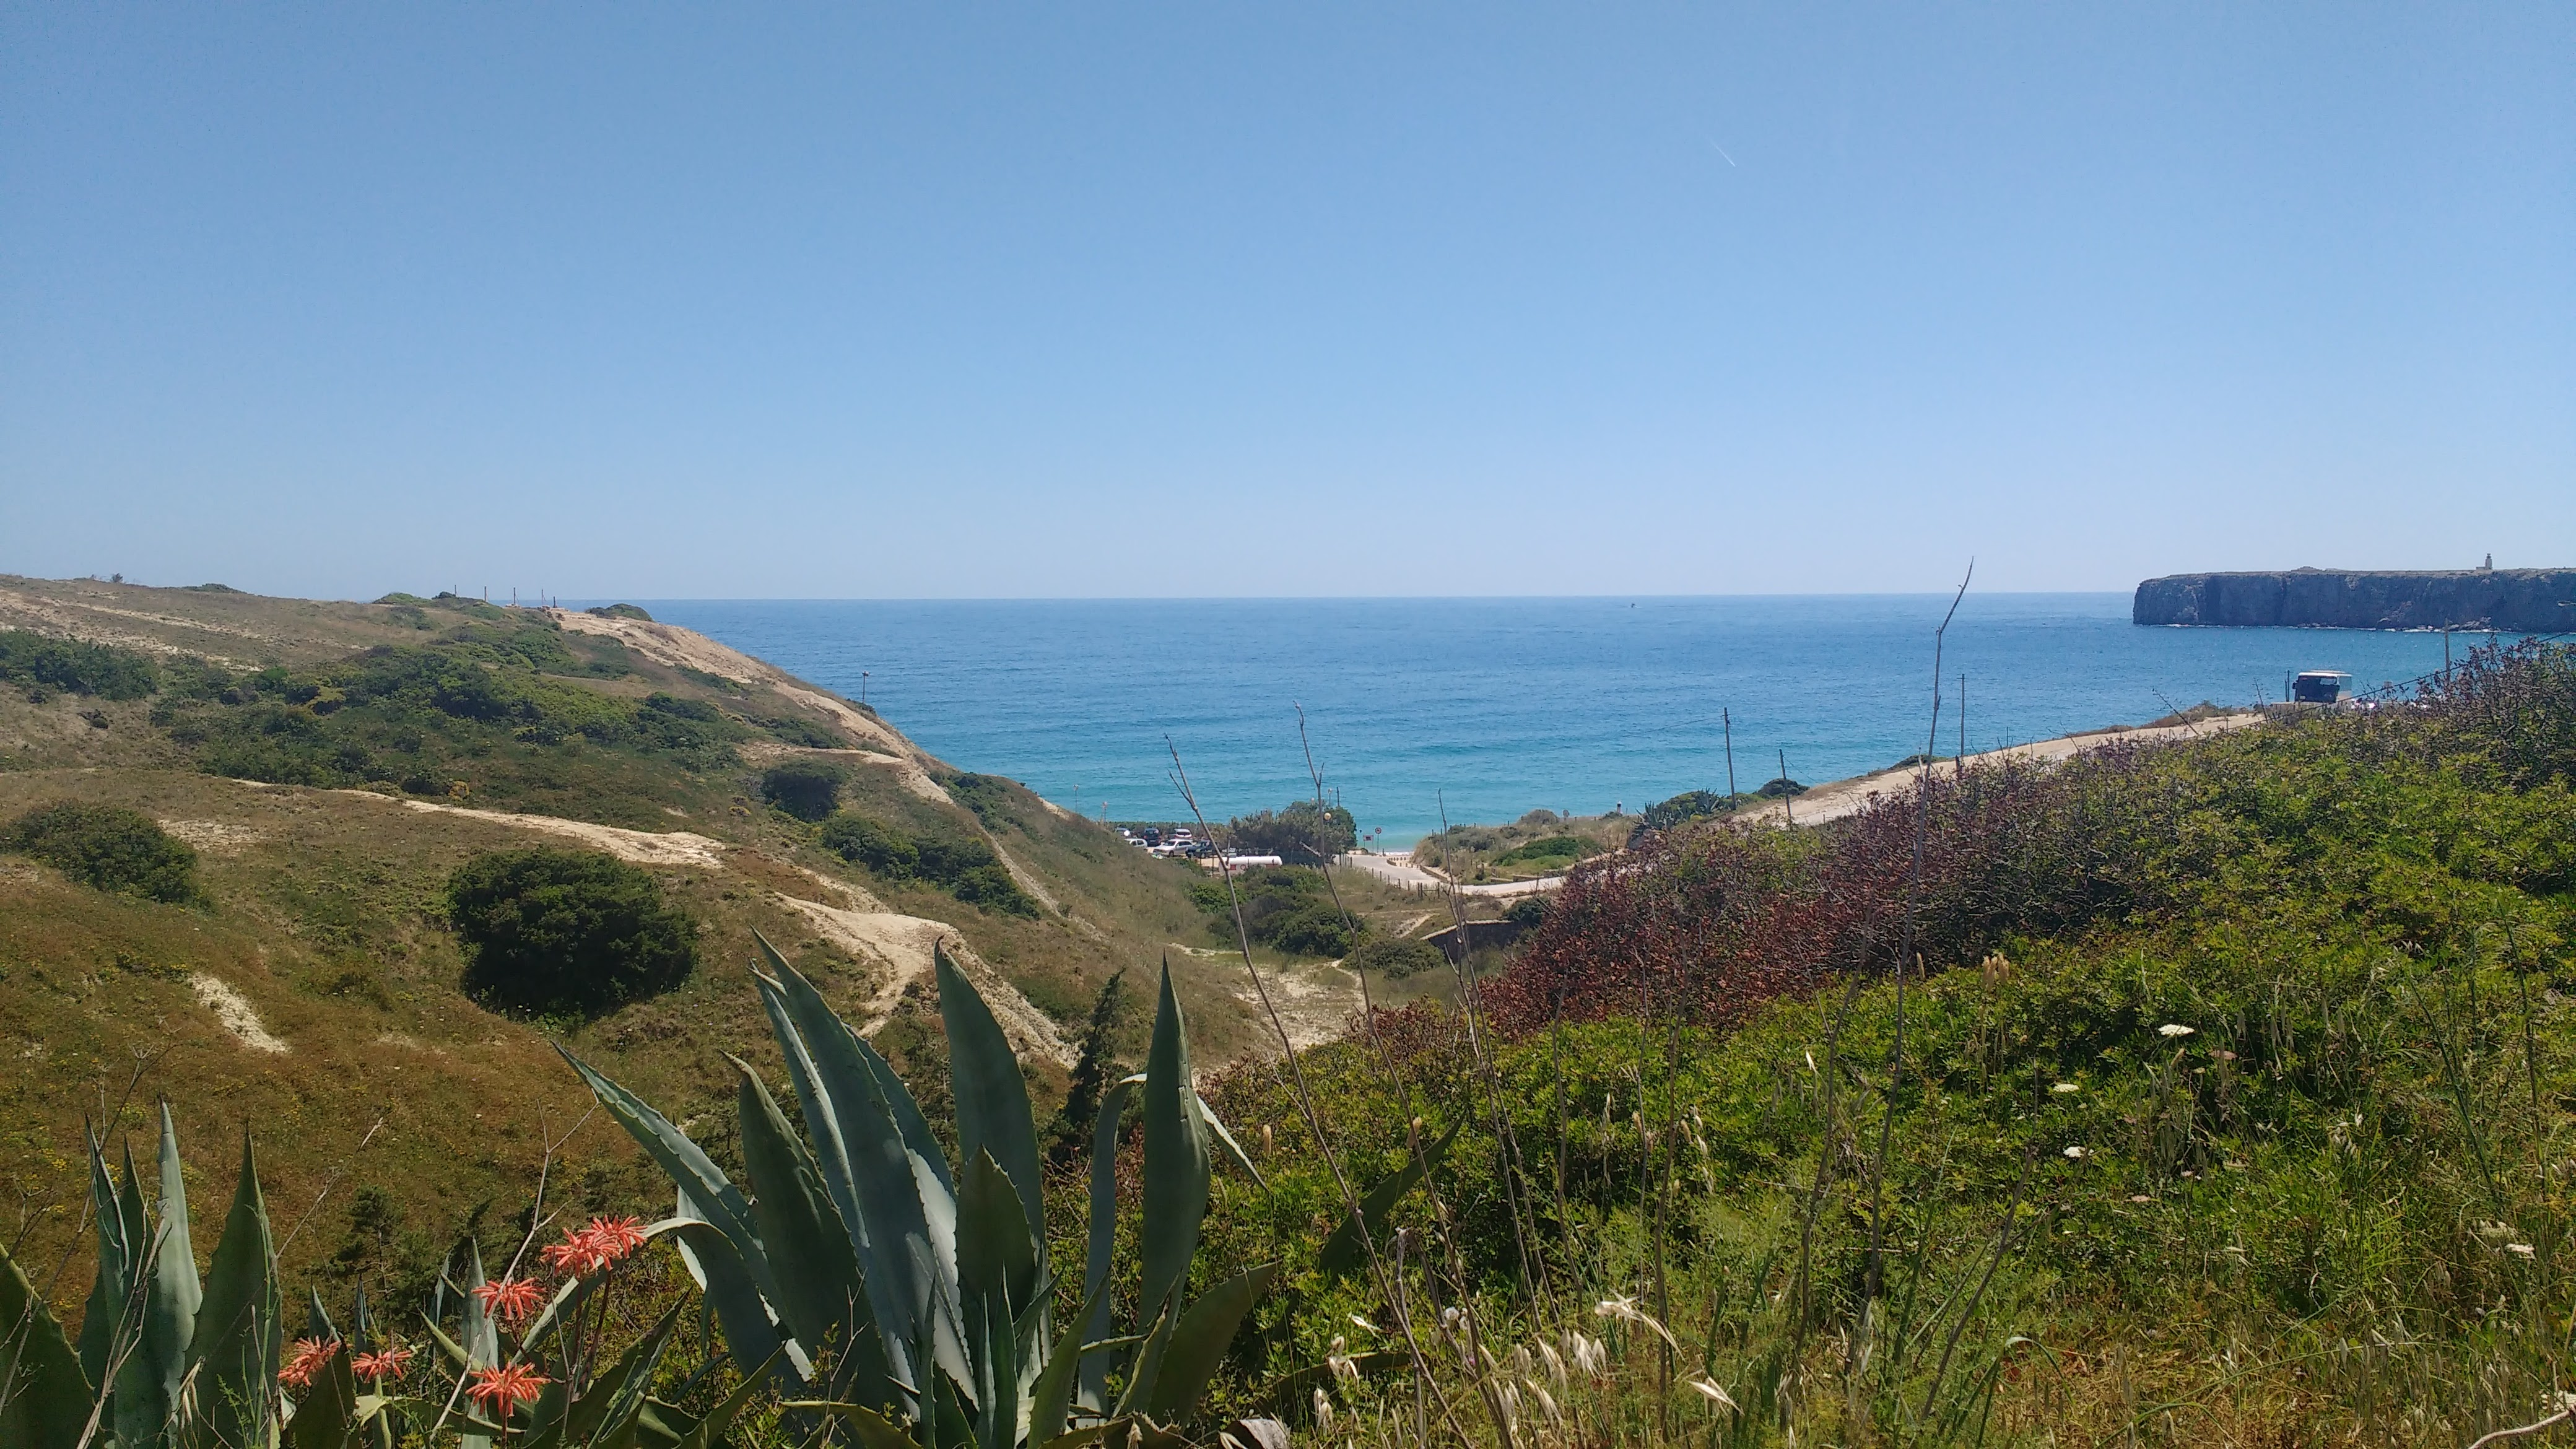 Praia da luz algarve surf yoga portugal retreat saltwater yoga ROXY longboard waves soul healthy